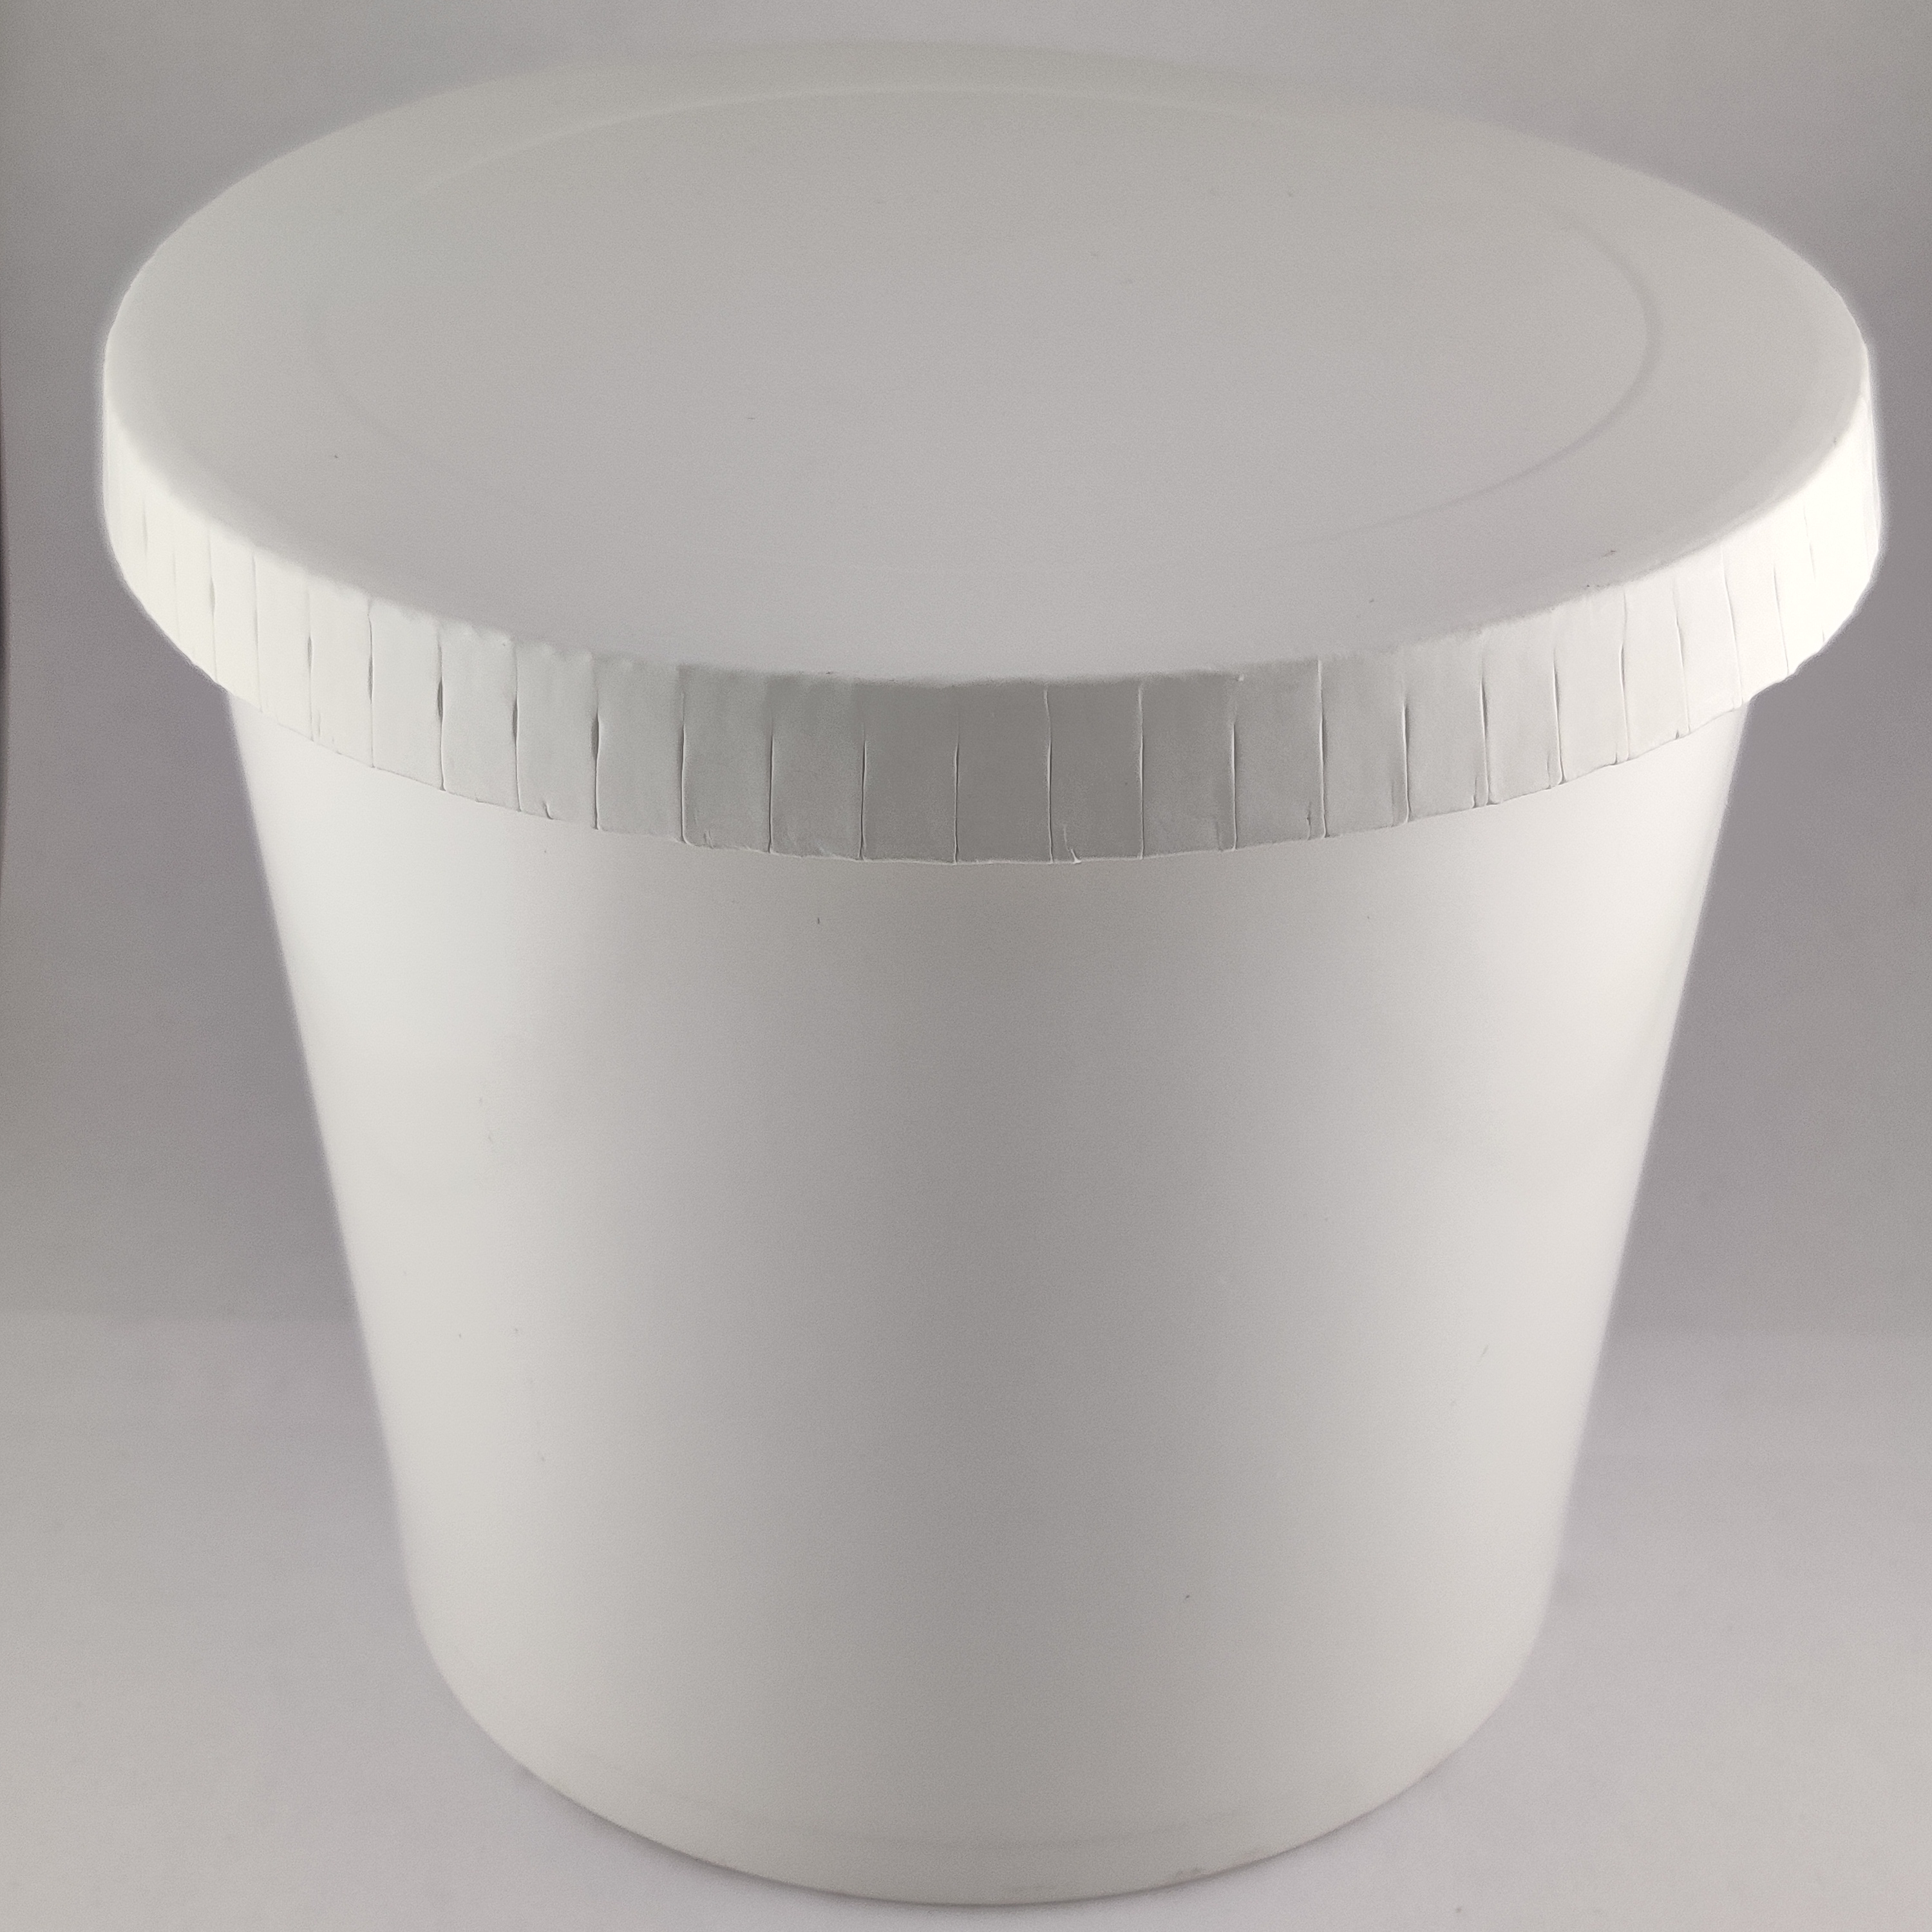 900ml Paper Container White Color/ Bowls With Paper Lids